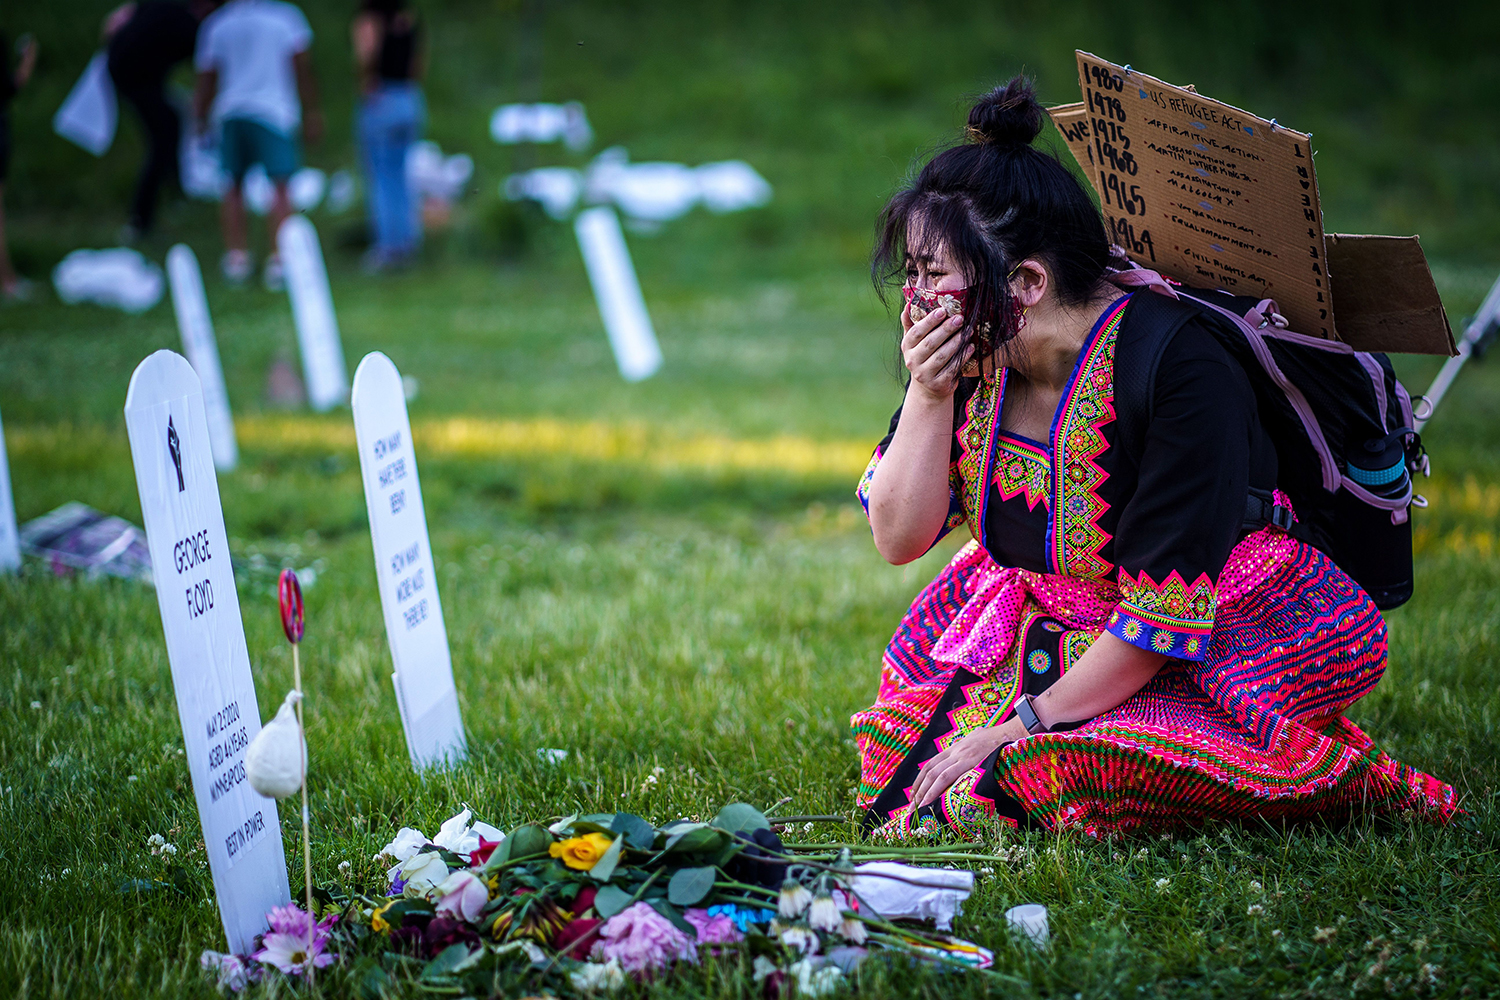 """Abby James, 32, cries in front of an installation called """"Say Their Names"""" in Minneapolis on June 7 in honor of victims of police brutality. KEREM YUCEL/AFP via Getty Images"""